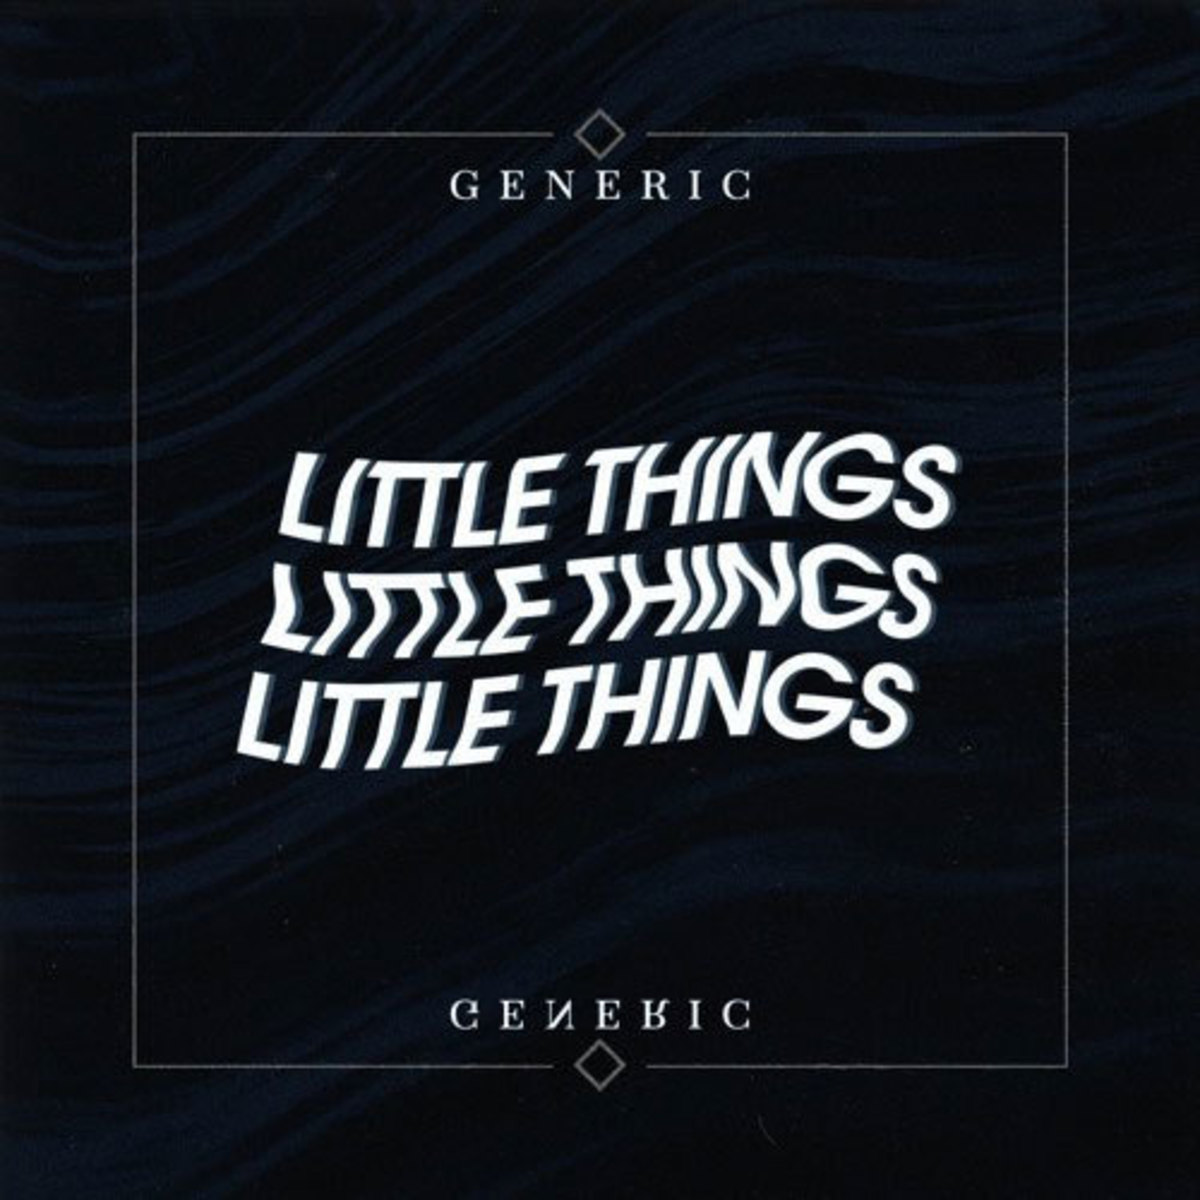 generic-little-things.jpg